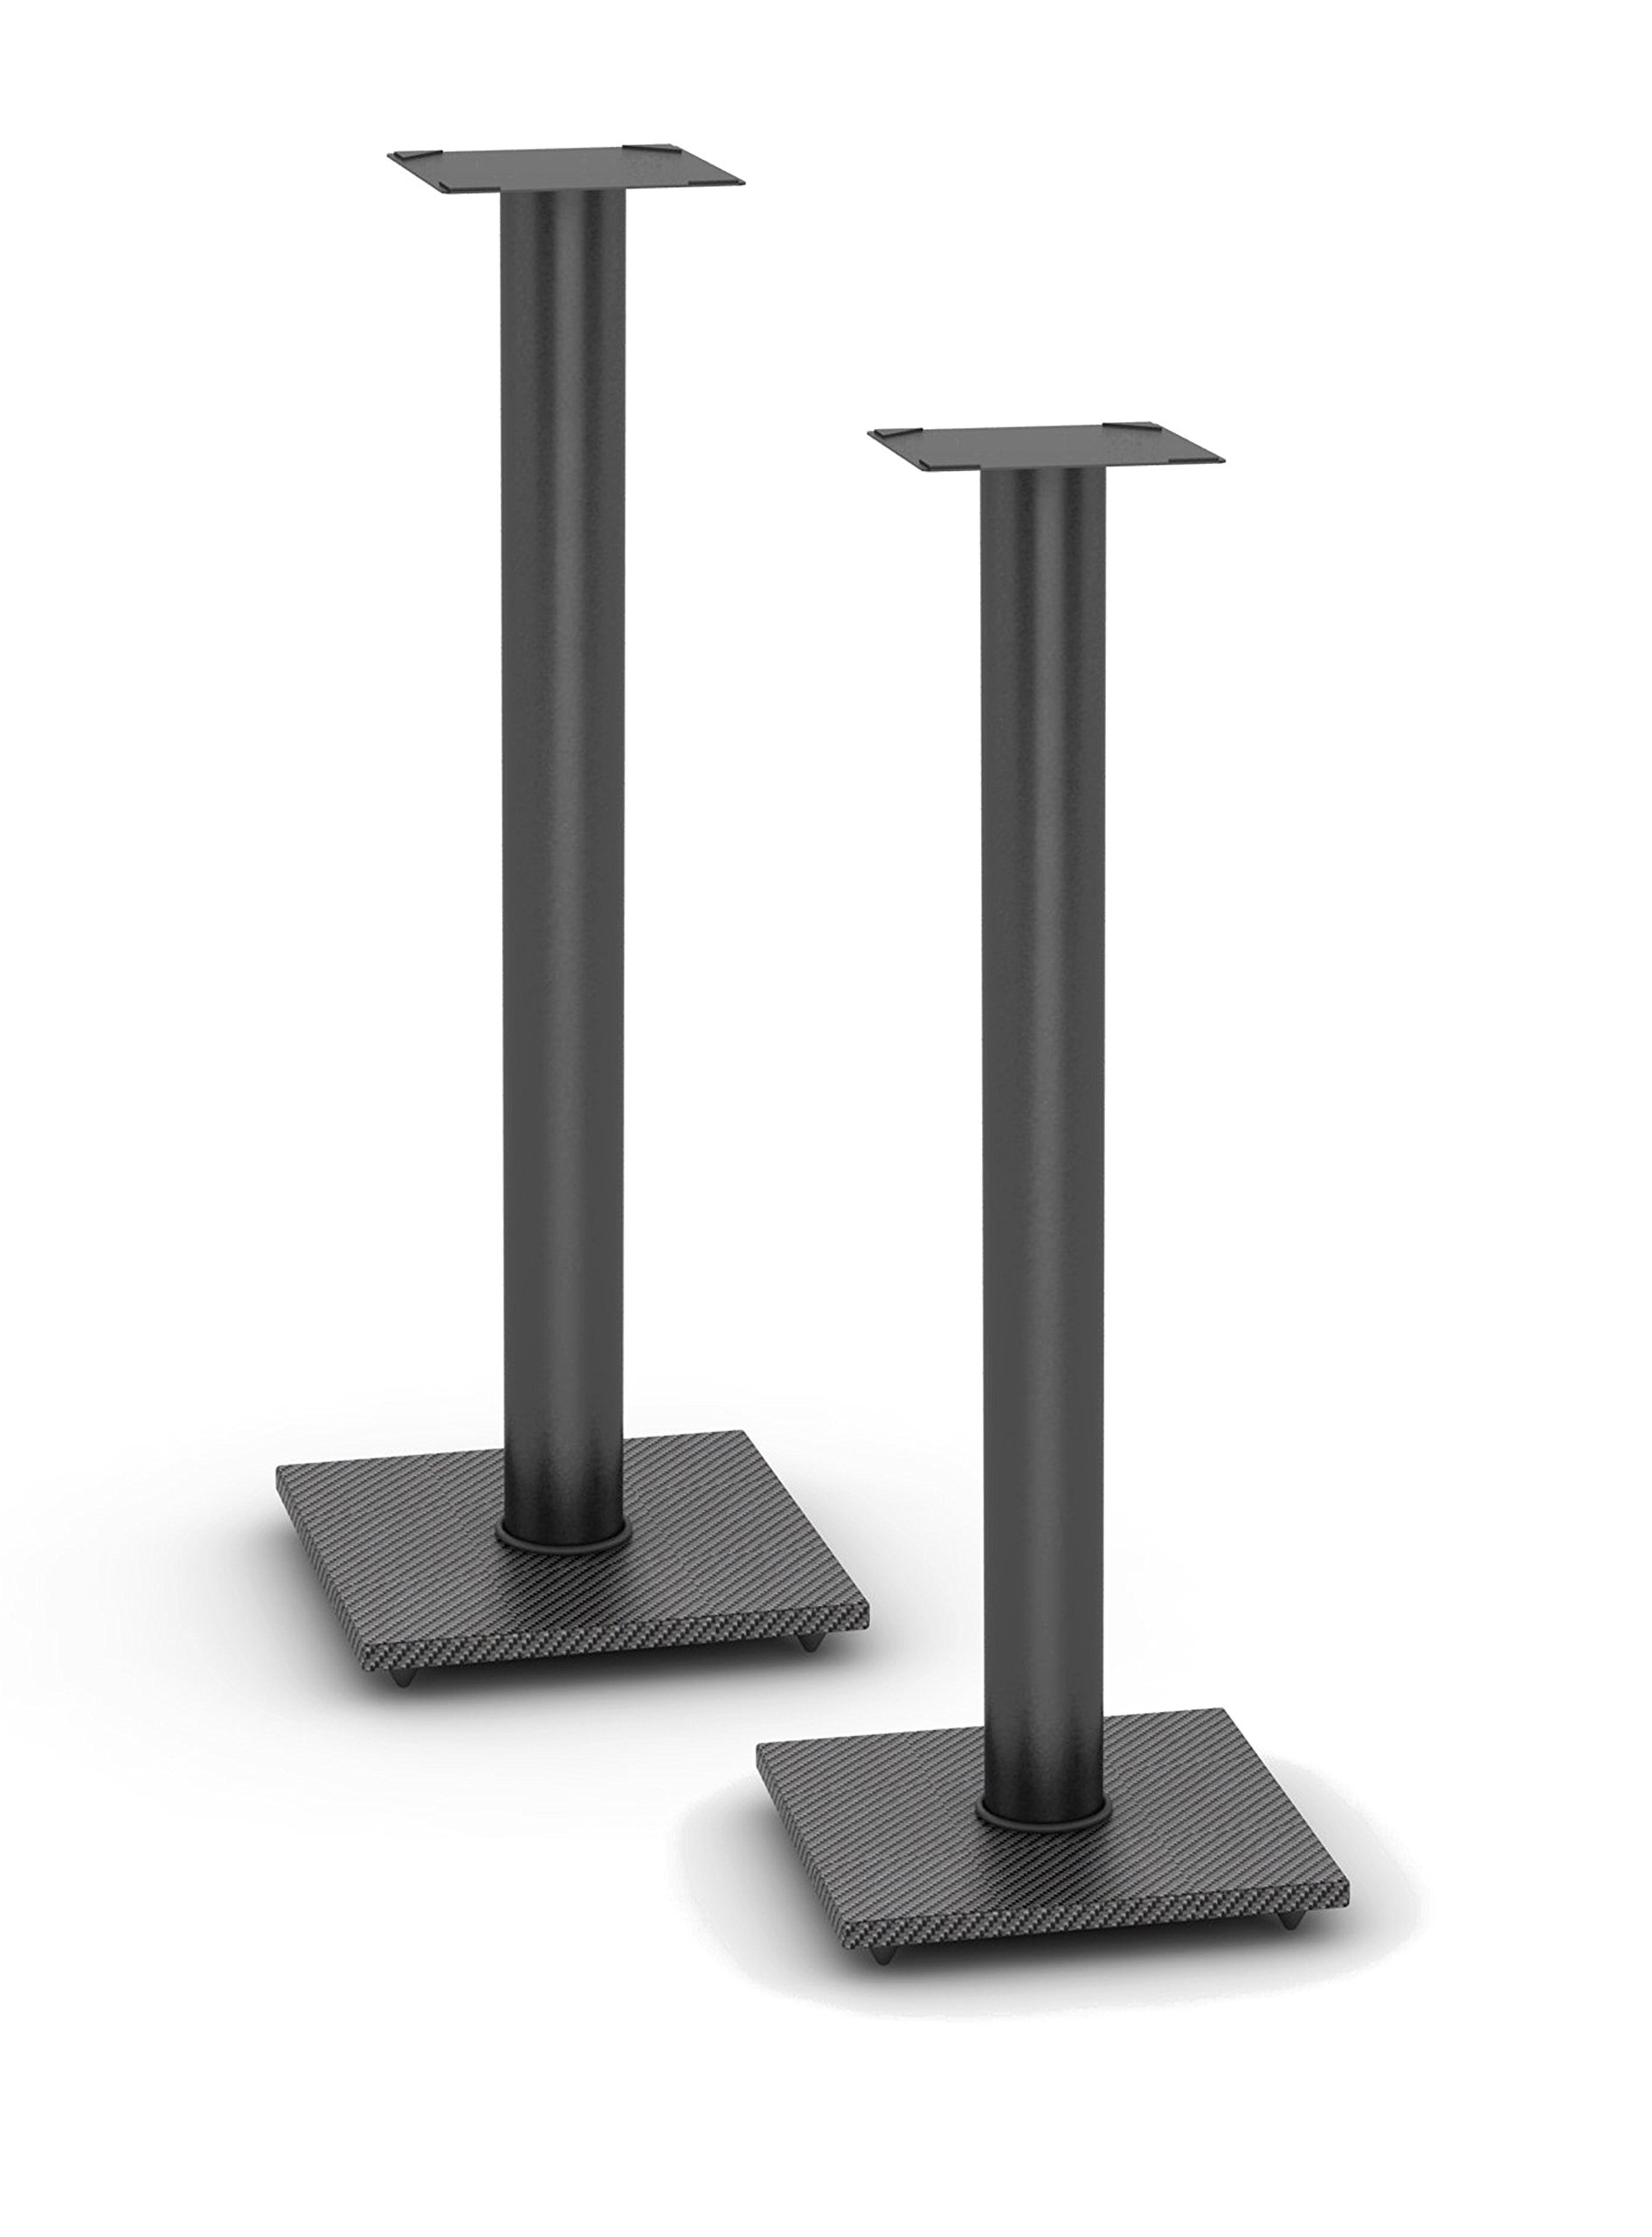 Atlantic Adjustable Speaker Stands 2-Pack Black - Steel Construction, Pedestal Style & wire Management for Bookshelf Speakers up to 20 lbs PN77335799 by Atlantic